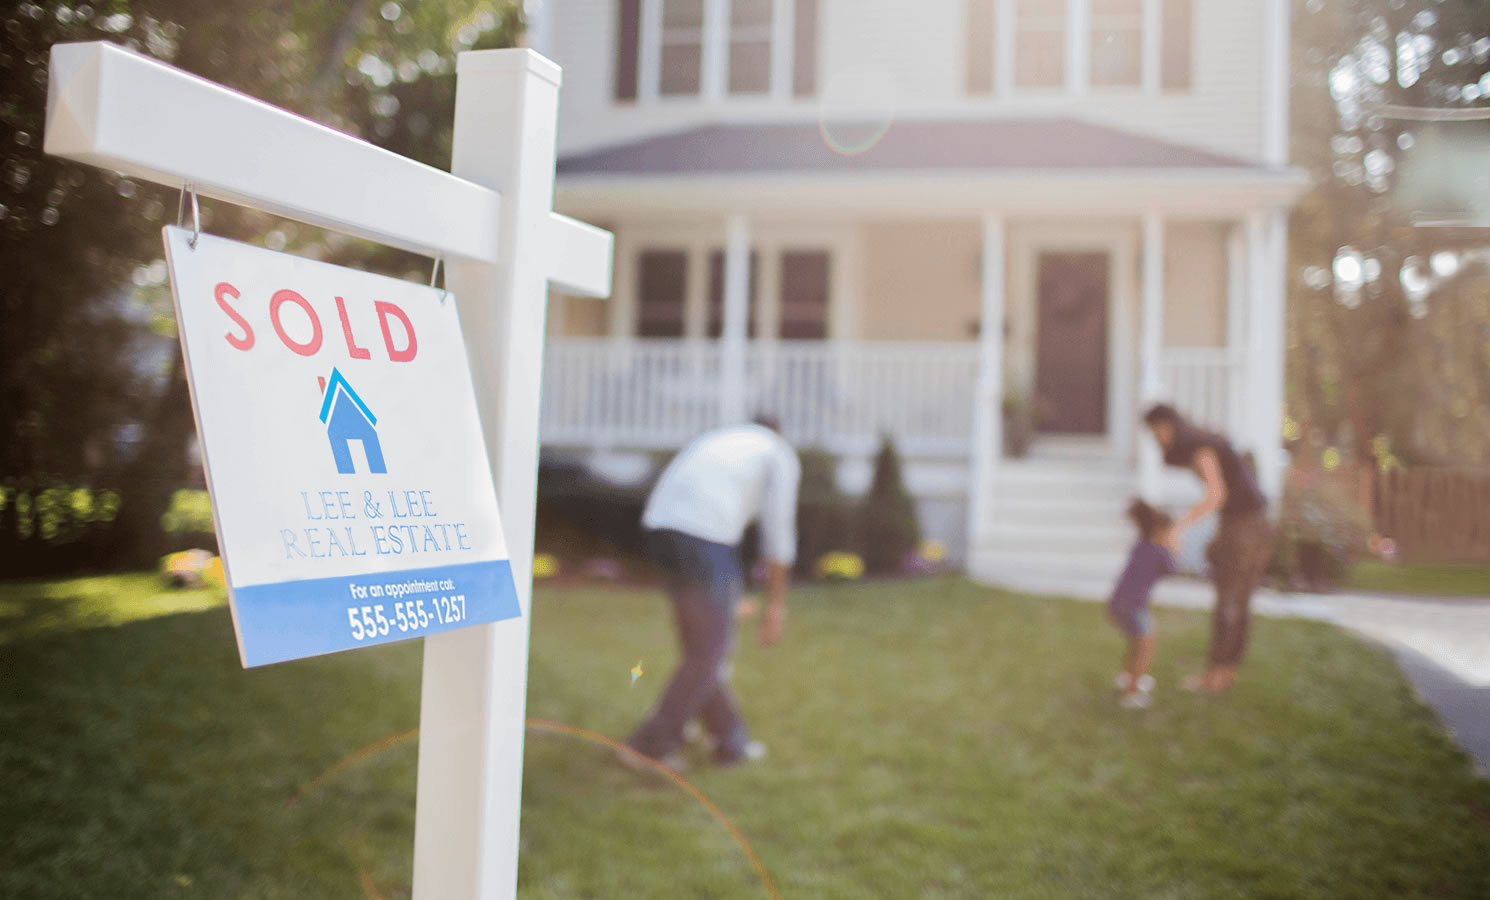 Check out our online tools. Our tools can help clarify the home buying process from beginning to end. Learn more